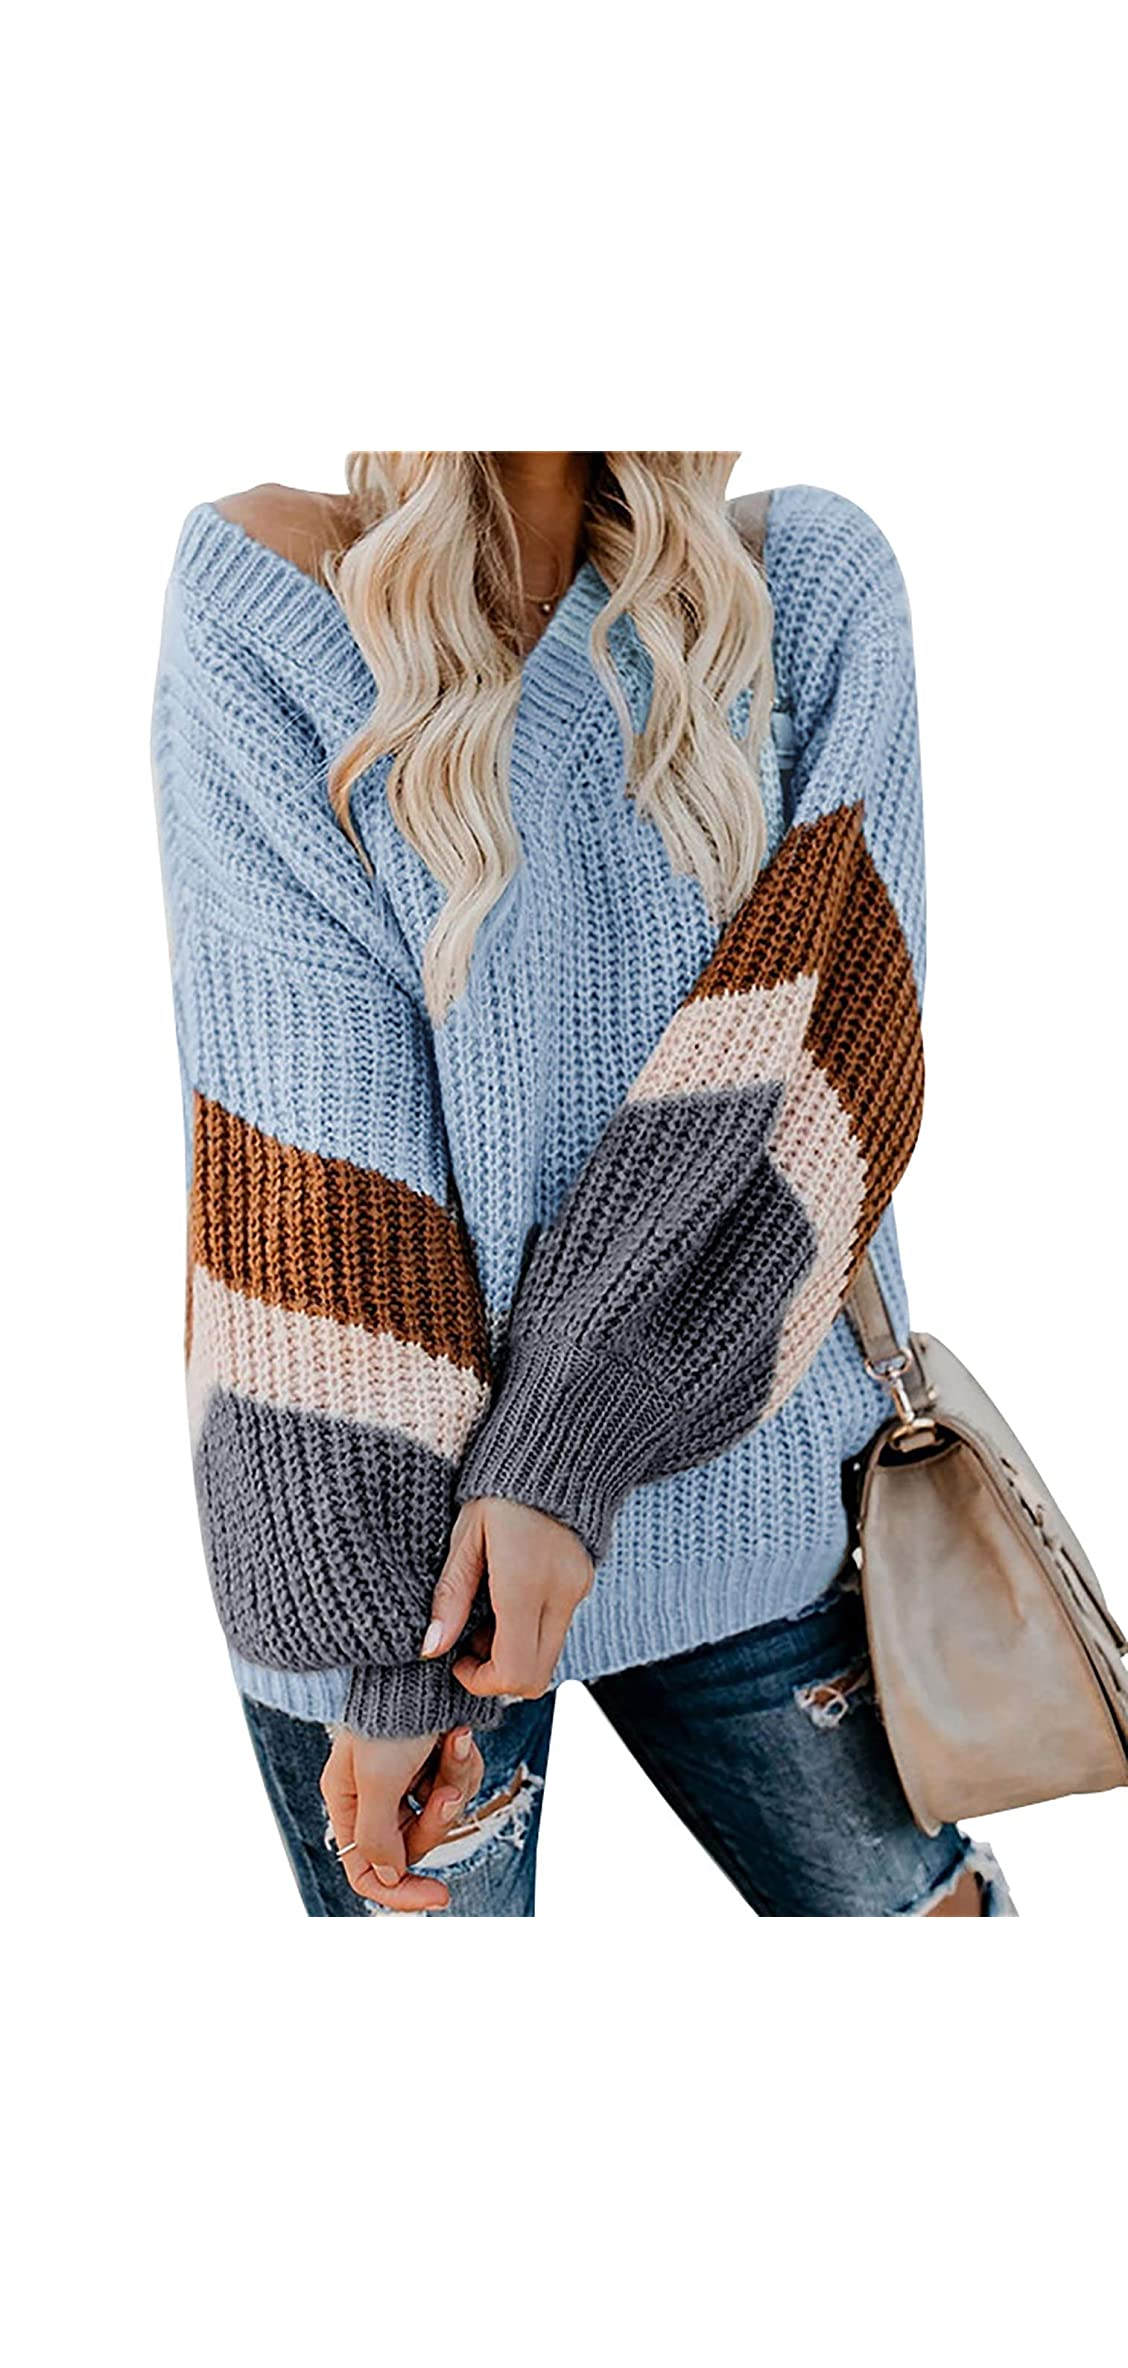 Women's Chunky Knit Sweater Striped Sleeve Pullover Tops